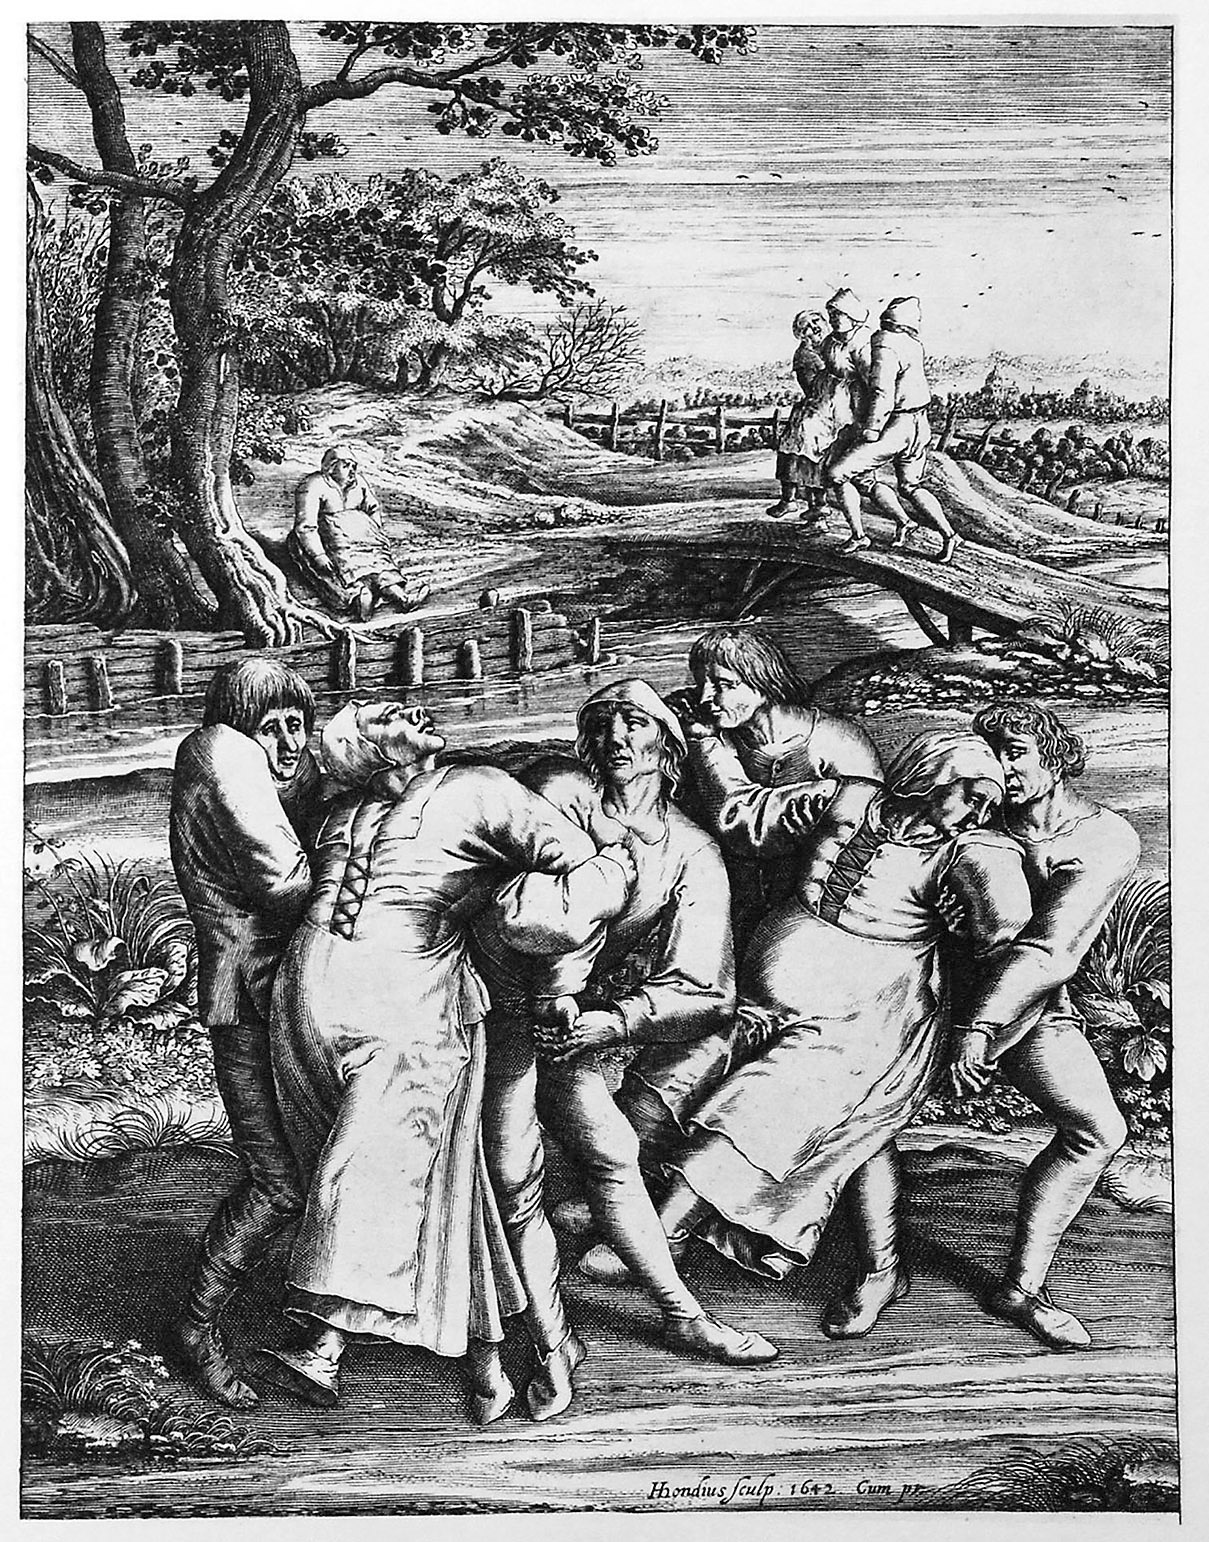 The dancing epidemic of 1518